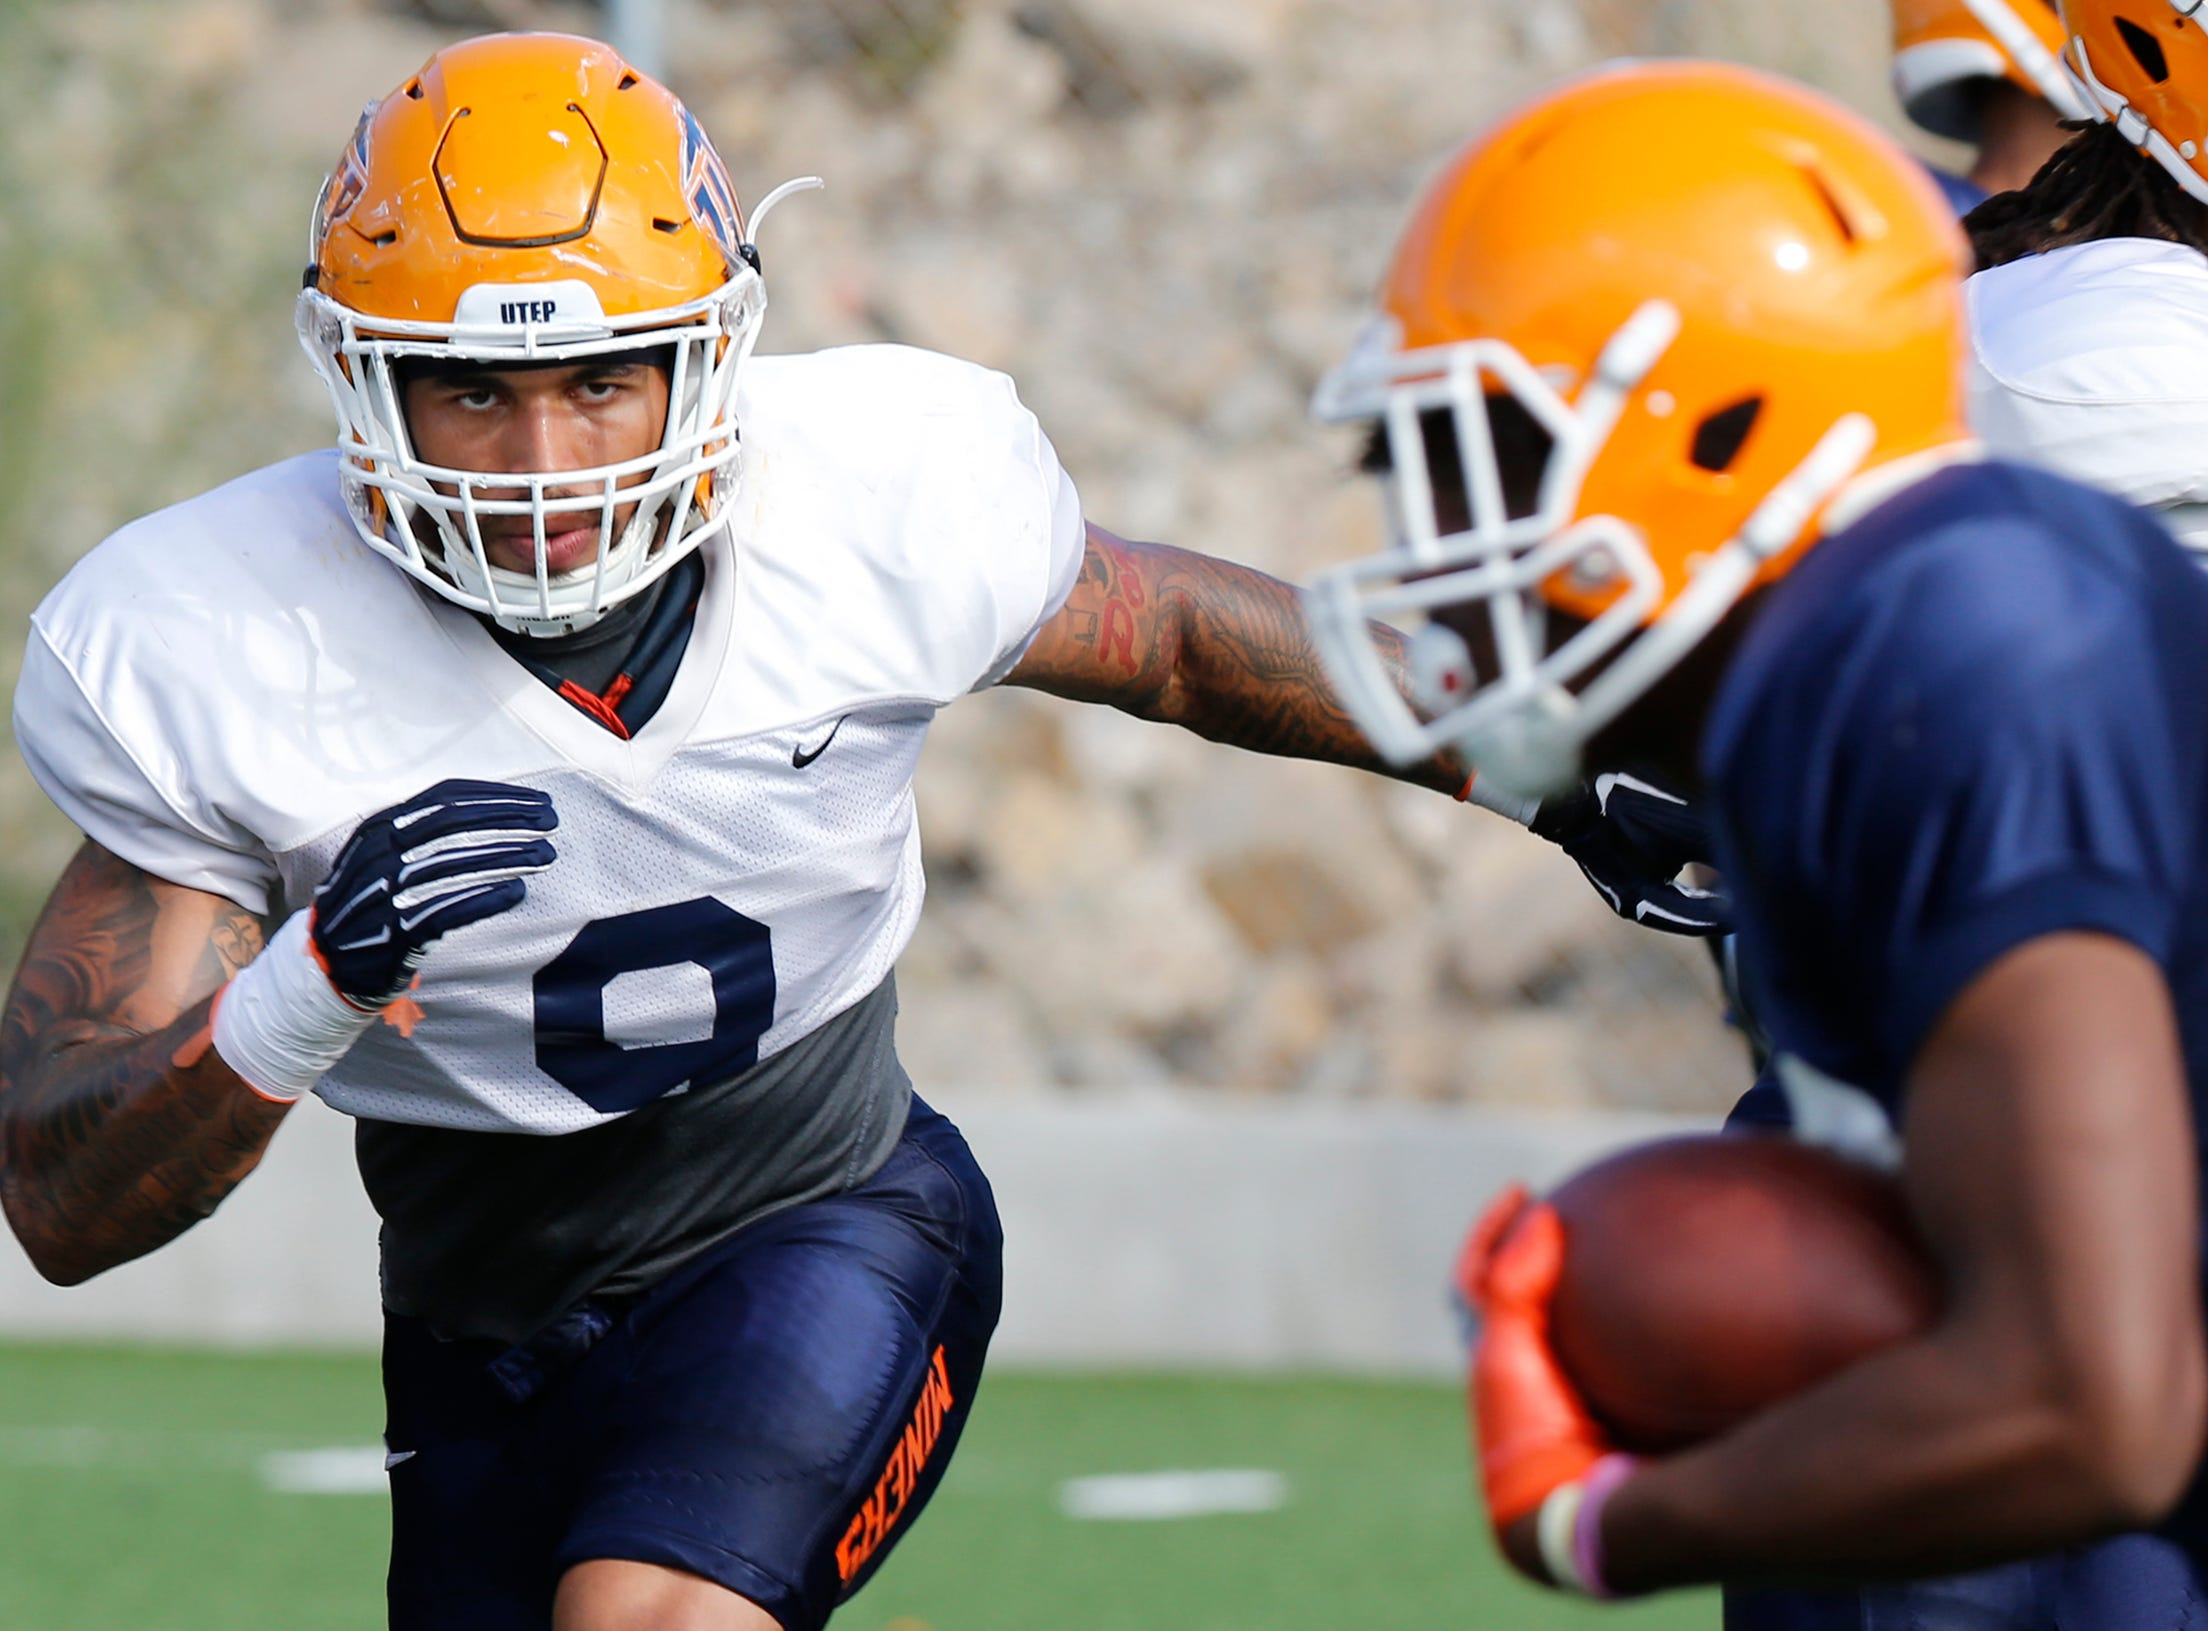 UTEP football notes: AJ Hotchkins sets up race to be C-USA's leading tackler